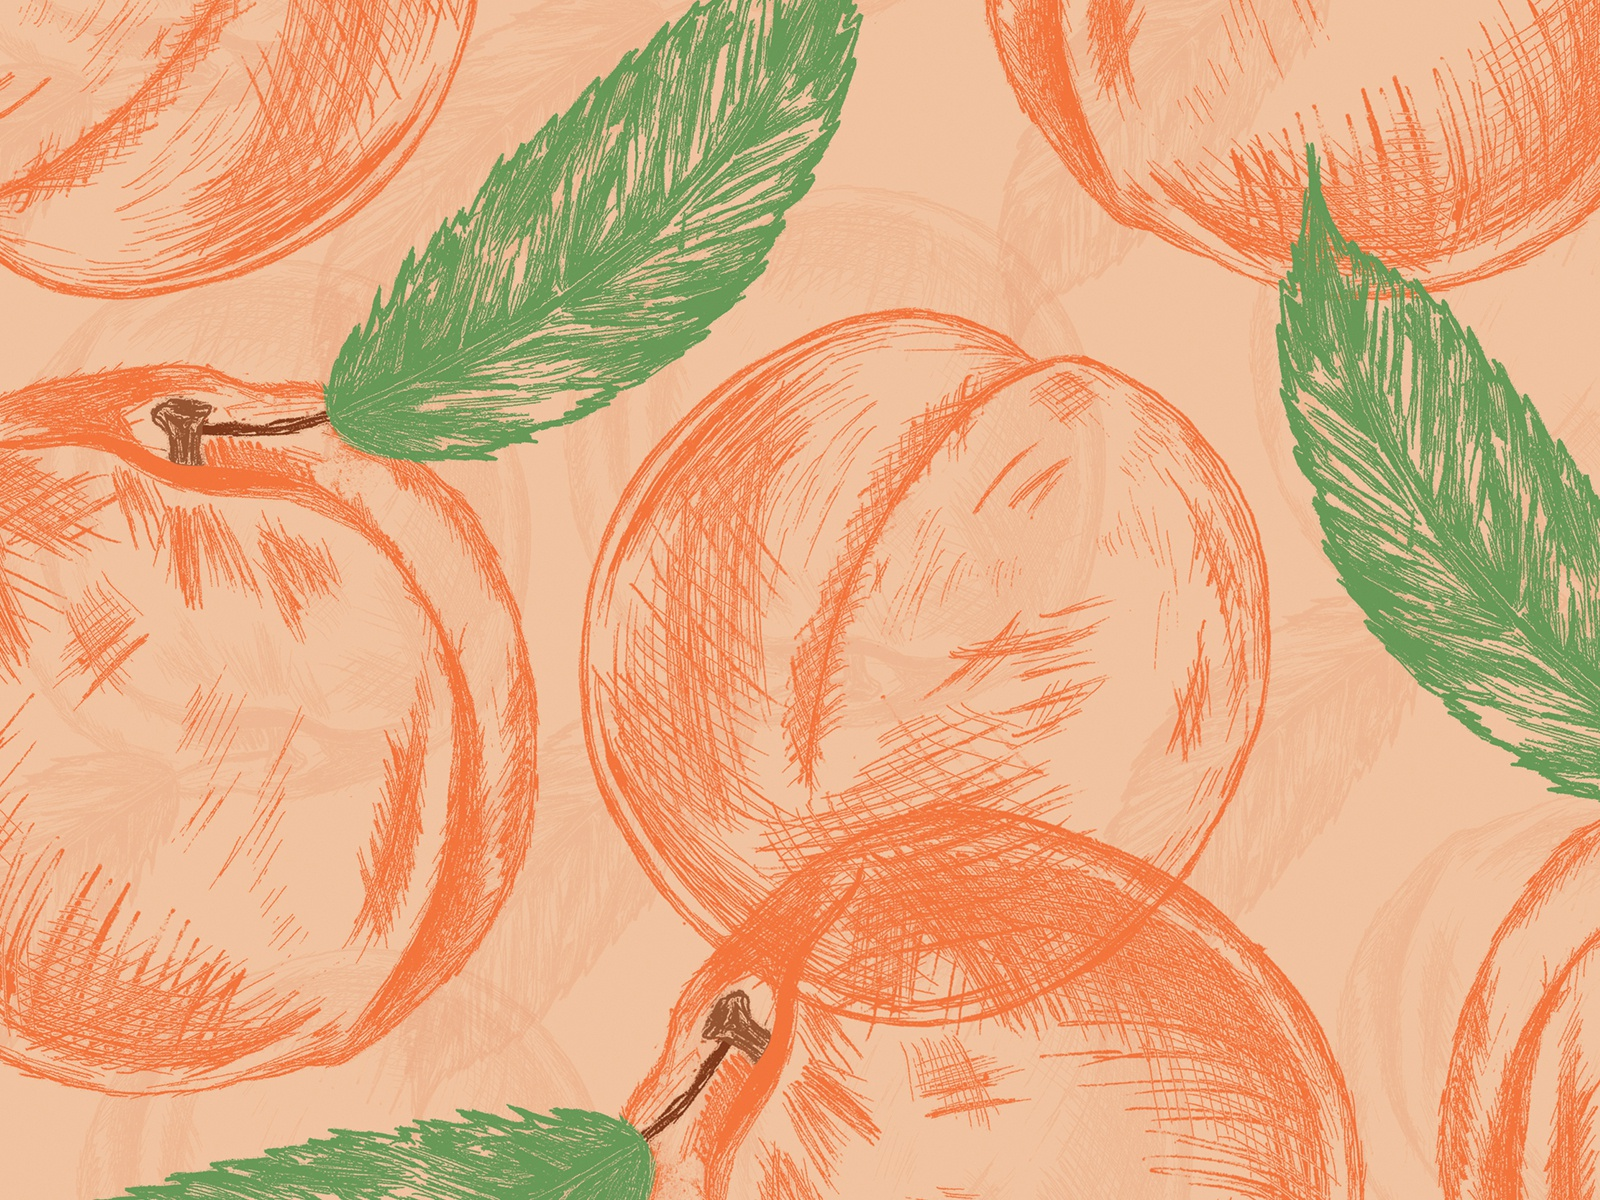 peaches wallpaper pattern by jen borror on dribbble peaches wallpaper pattern by jen borror